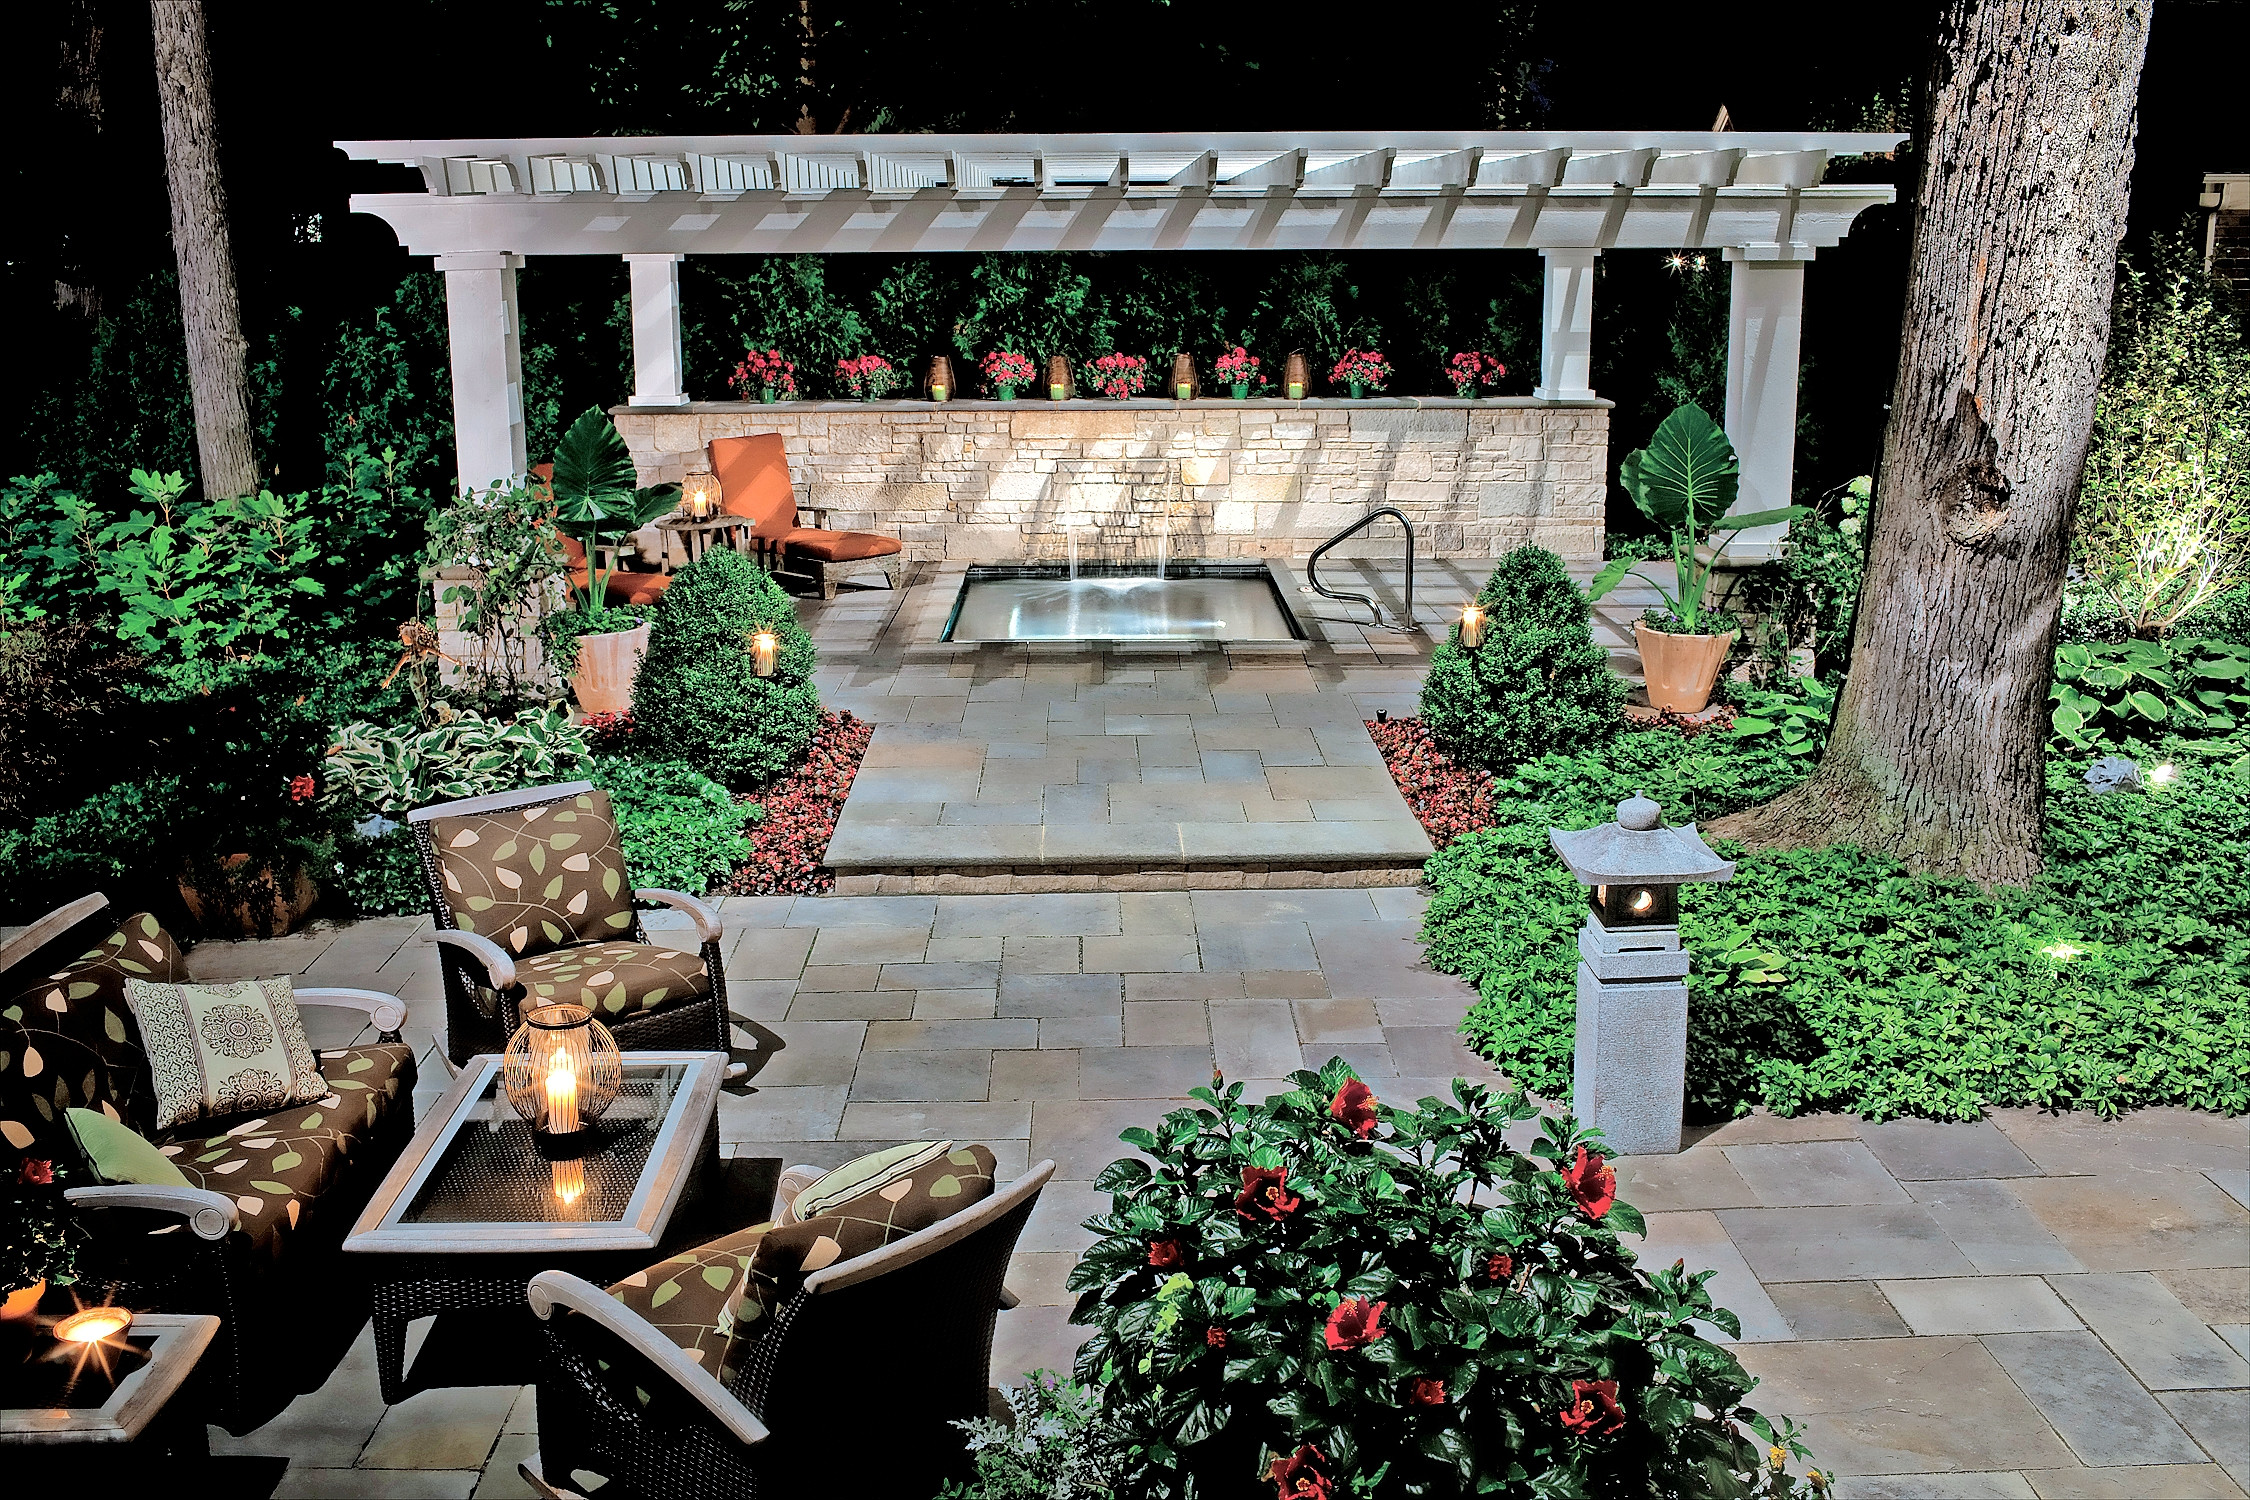 Backyard Living Magazine  Backyard Beauty—Landscaping Your Outdoor Living Space With